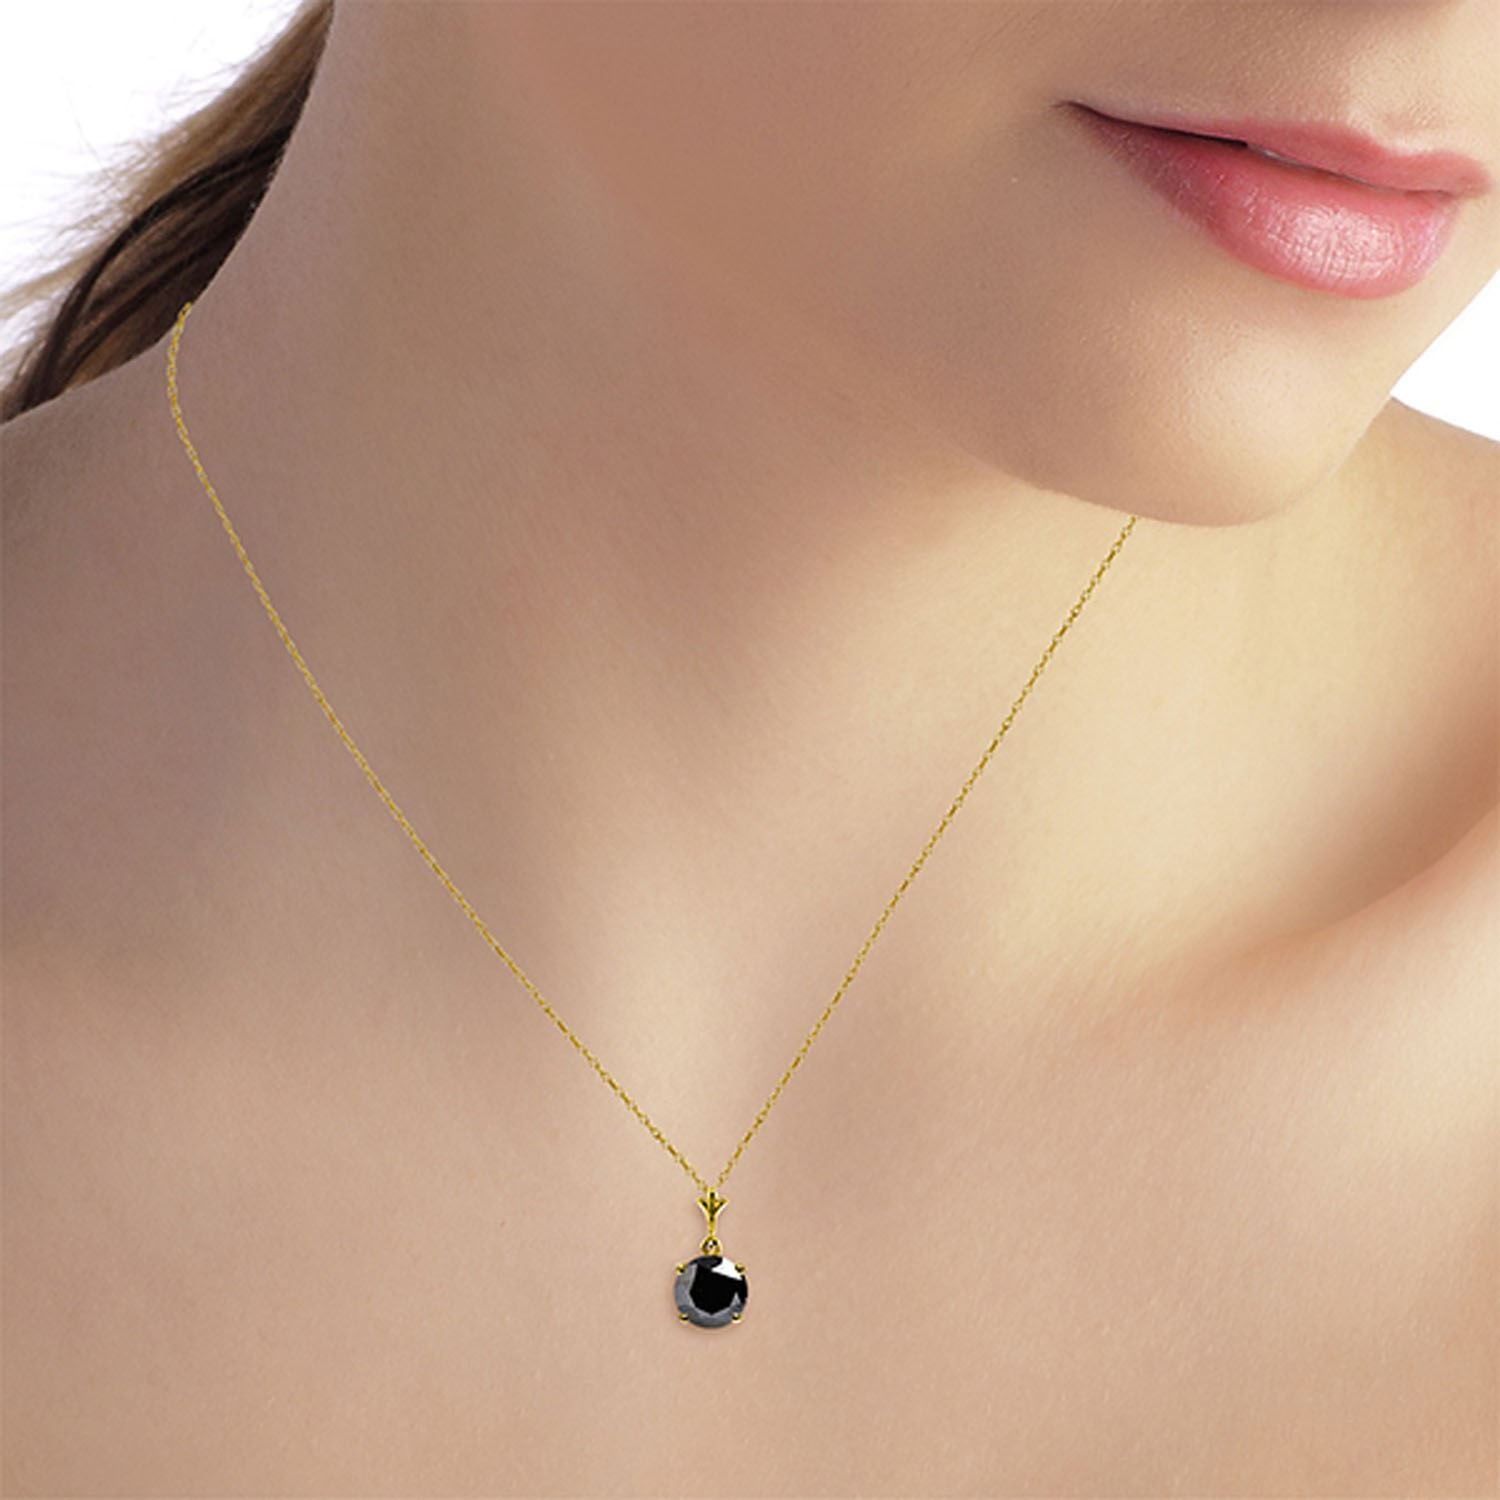 ALARRI 2.38 Carat 14K Solid Gold Necklace Black Cubic Zirconia with 24 Inch Chain Length